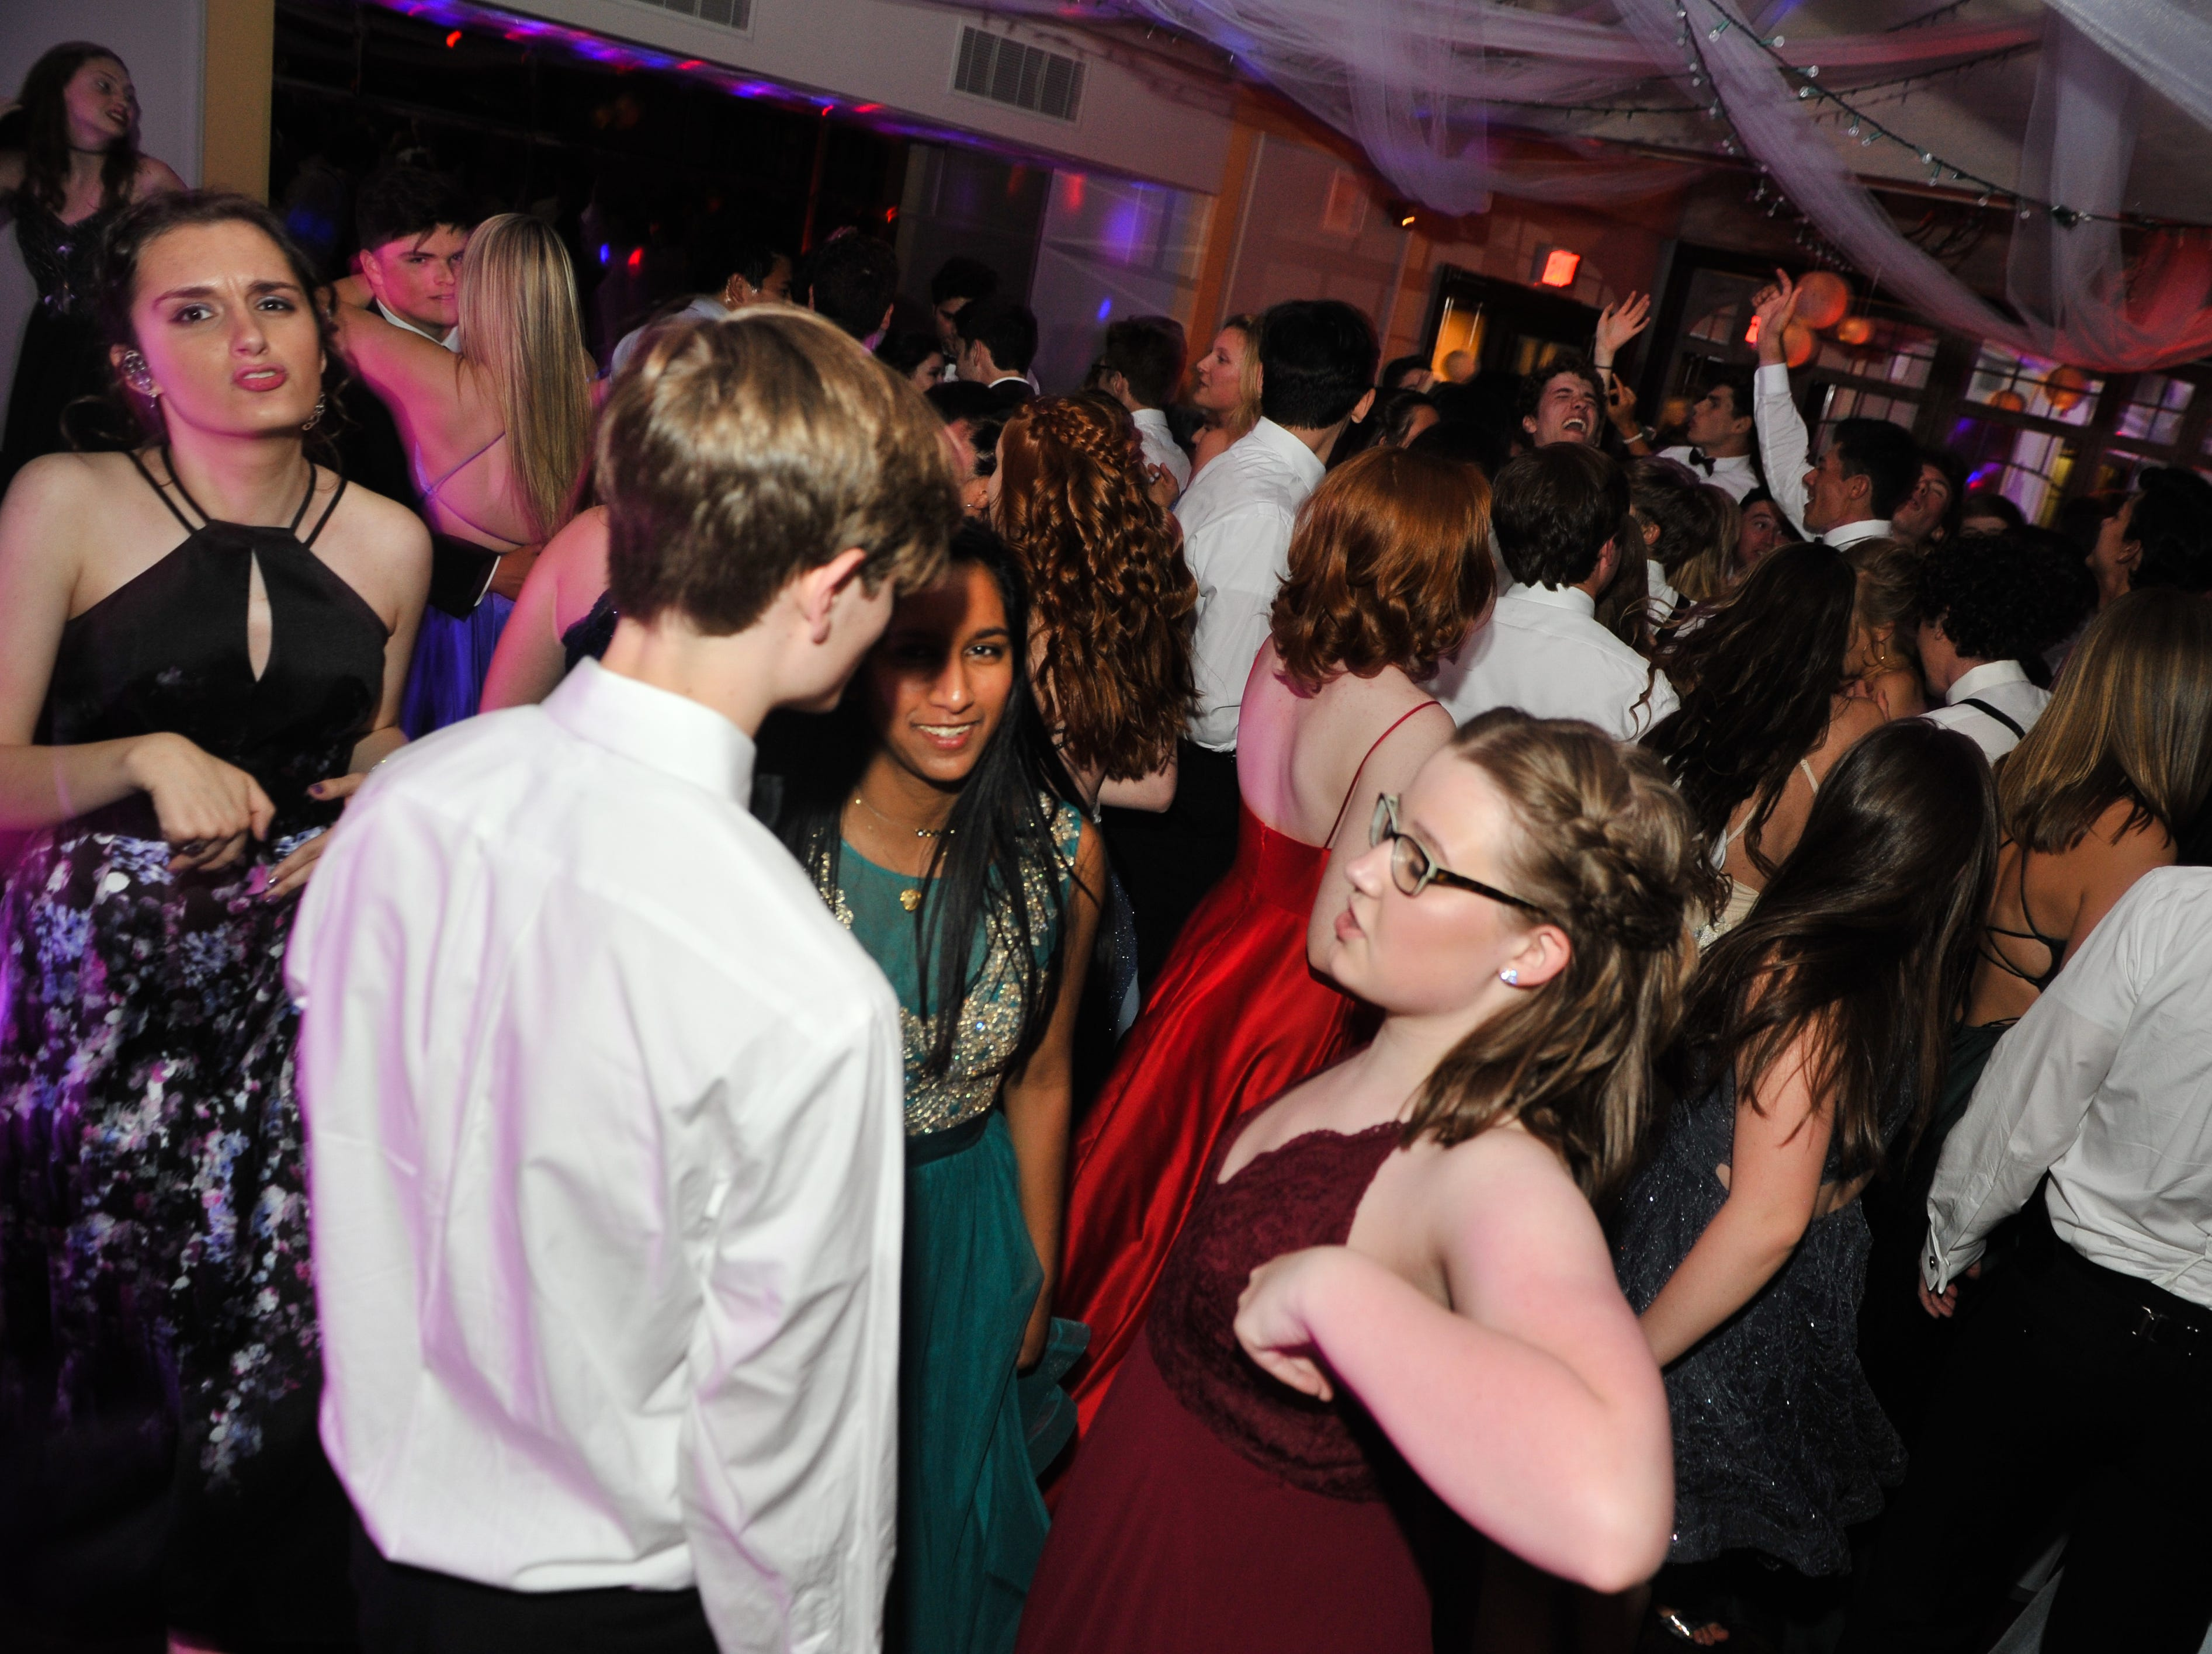 Scenes from the Carolina Day School prom at the Country Club of Asheville on April 27, 2019.